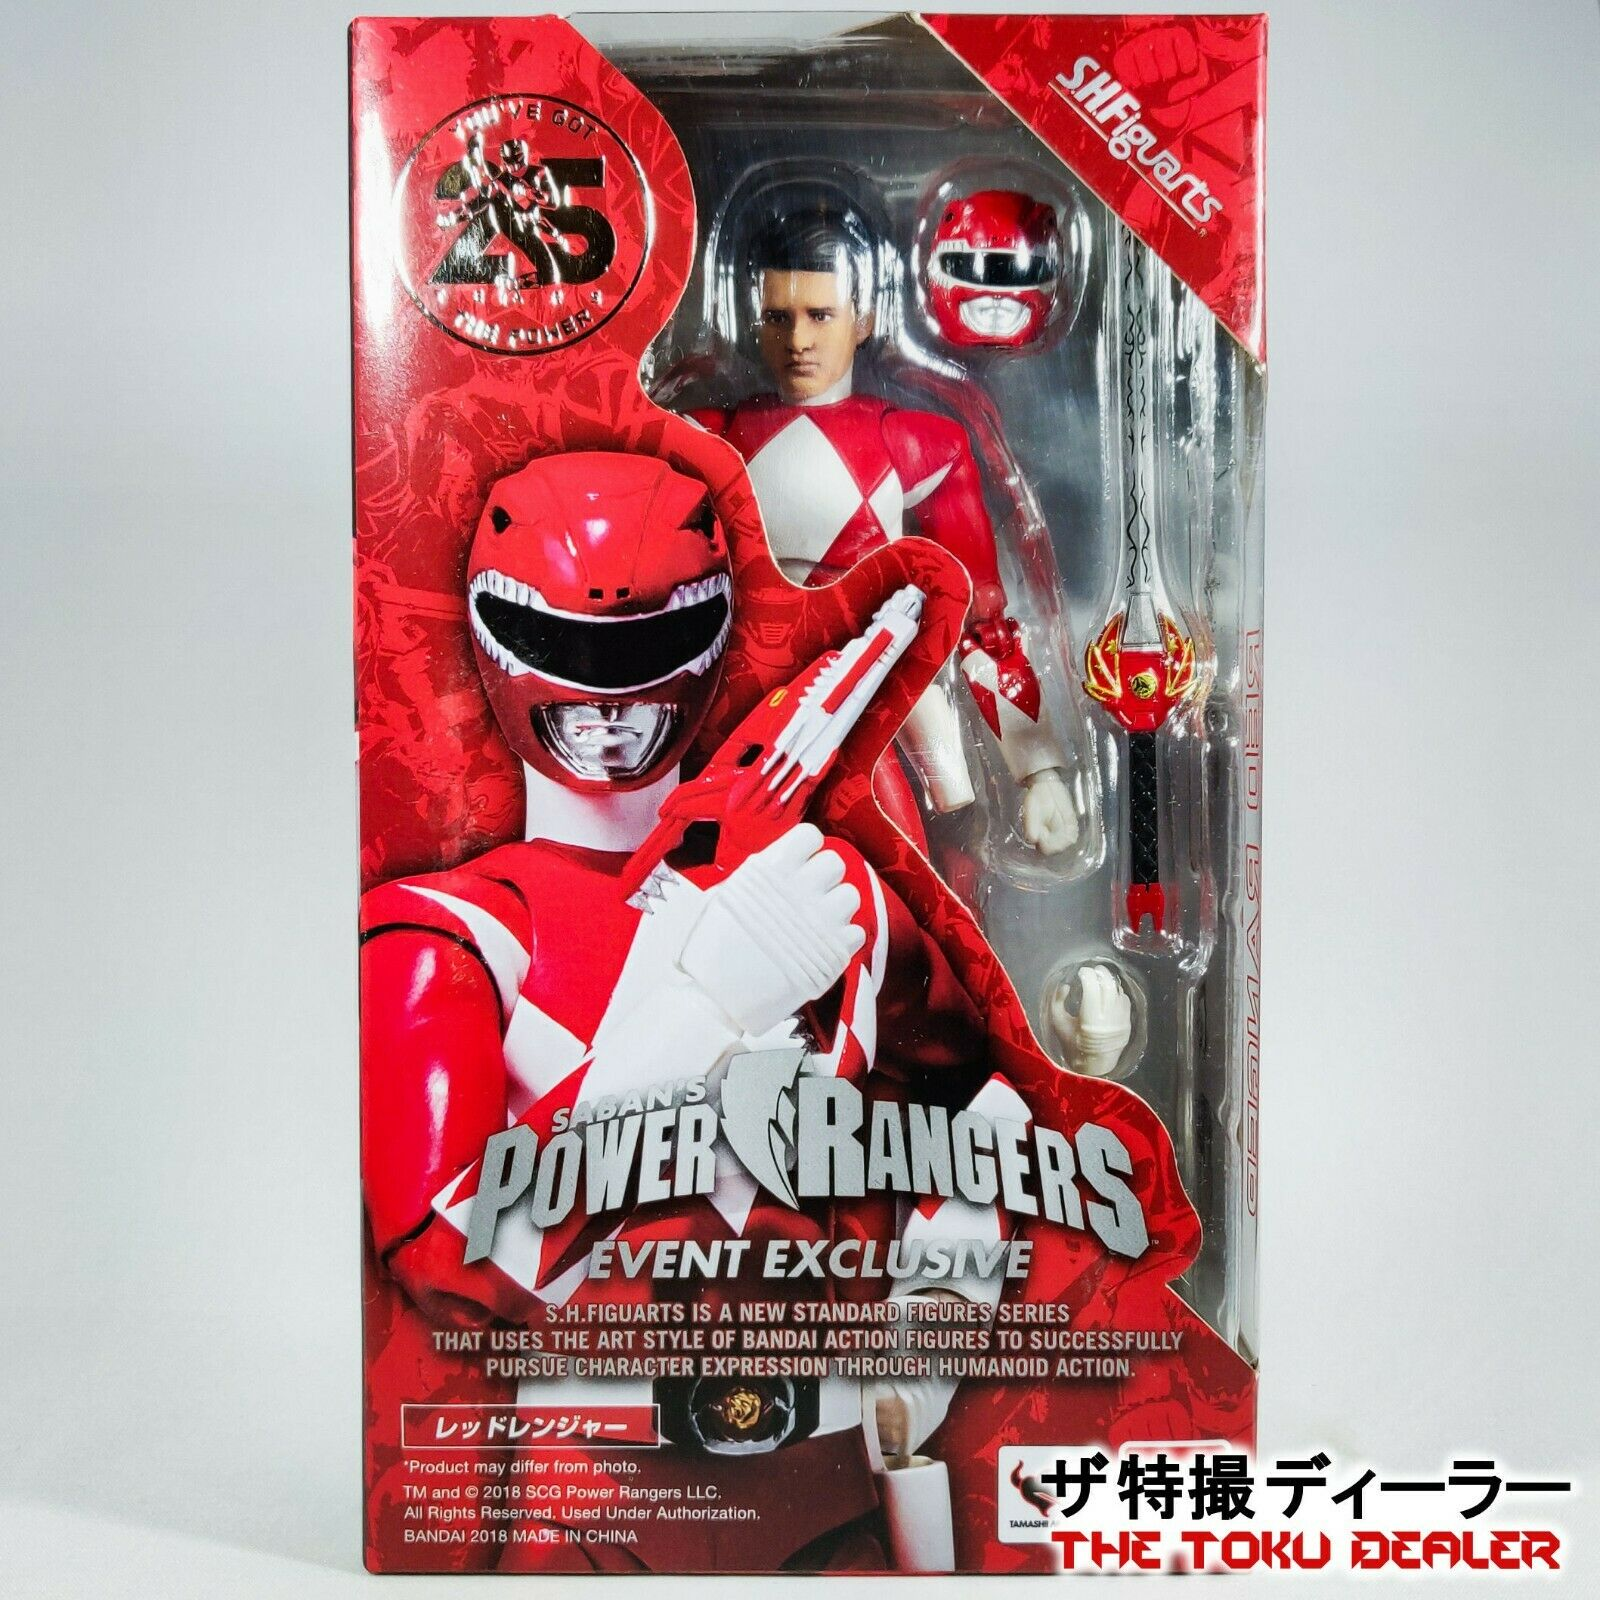 S.H.FIGUARTS MIGHTY MORPHIN' POWER RANGERS rot RANGER ACTION FIGURE SDCC '18 UK